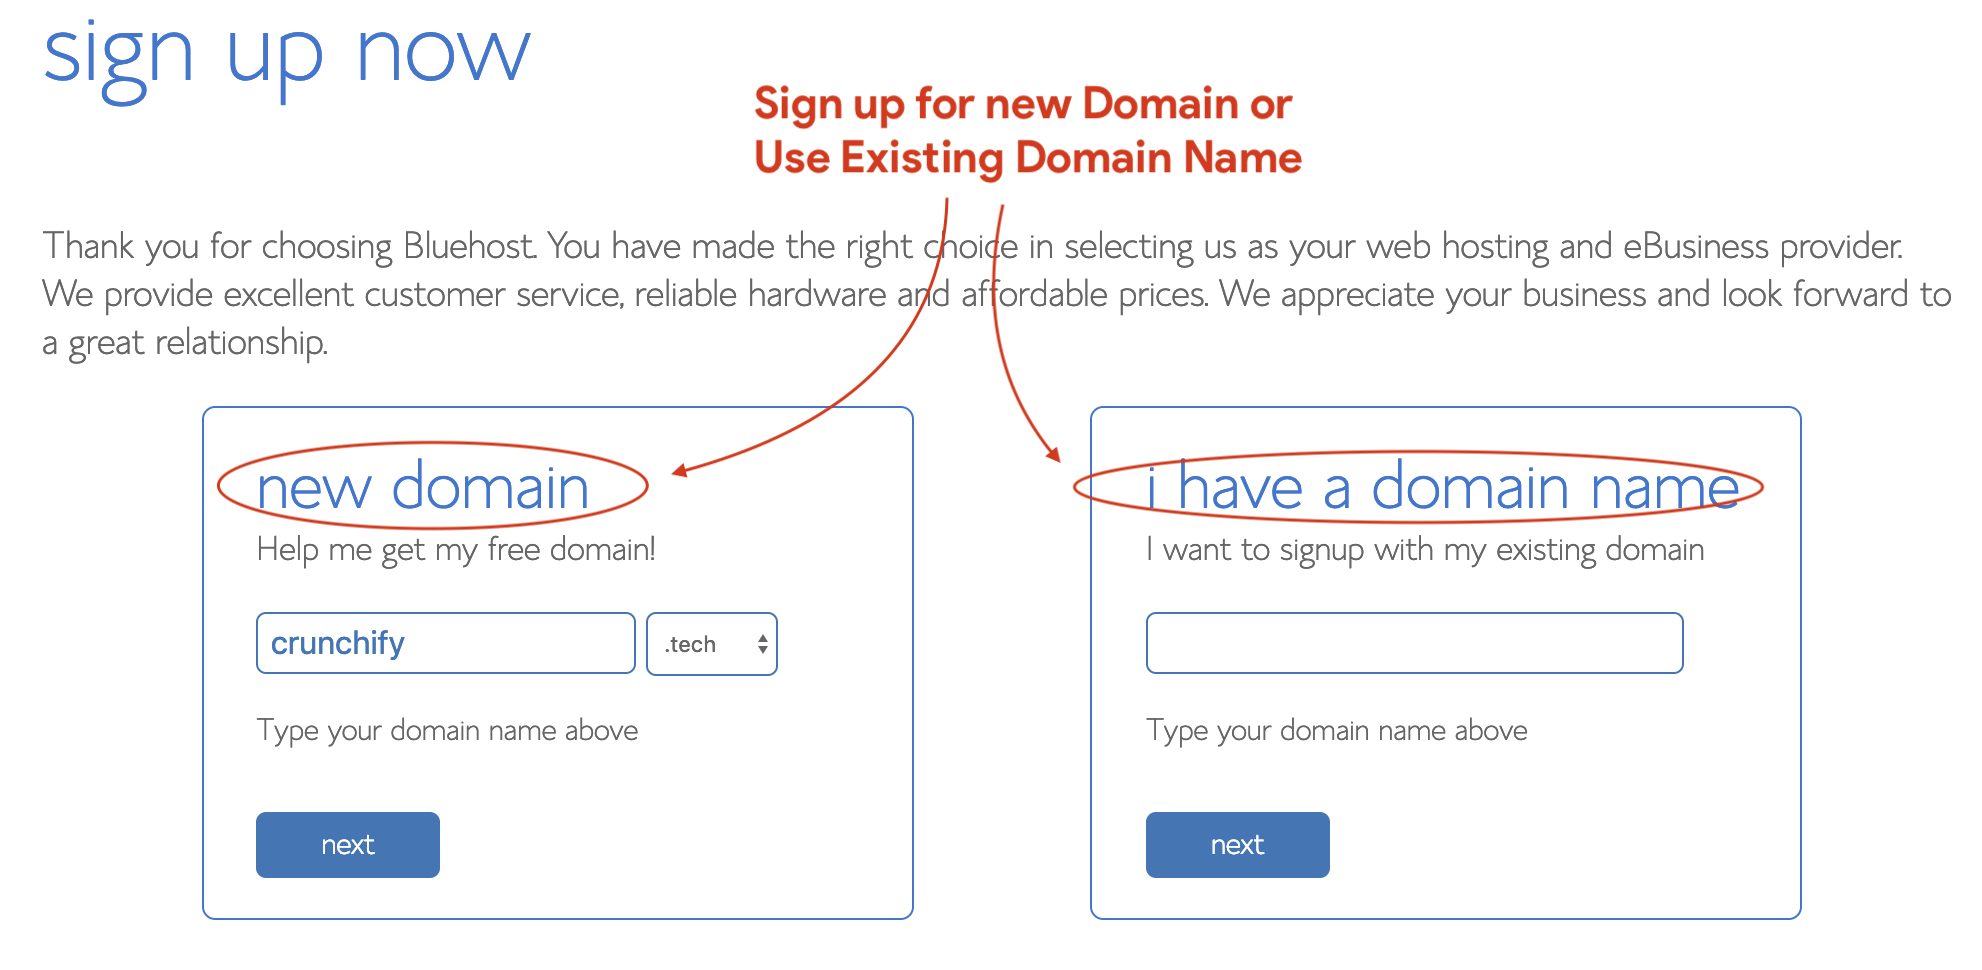 Sign up for Bluehost - Register new Domain